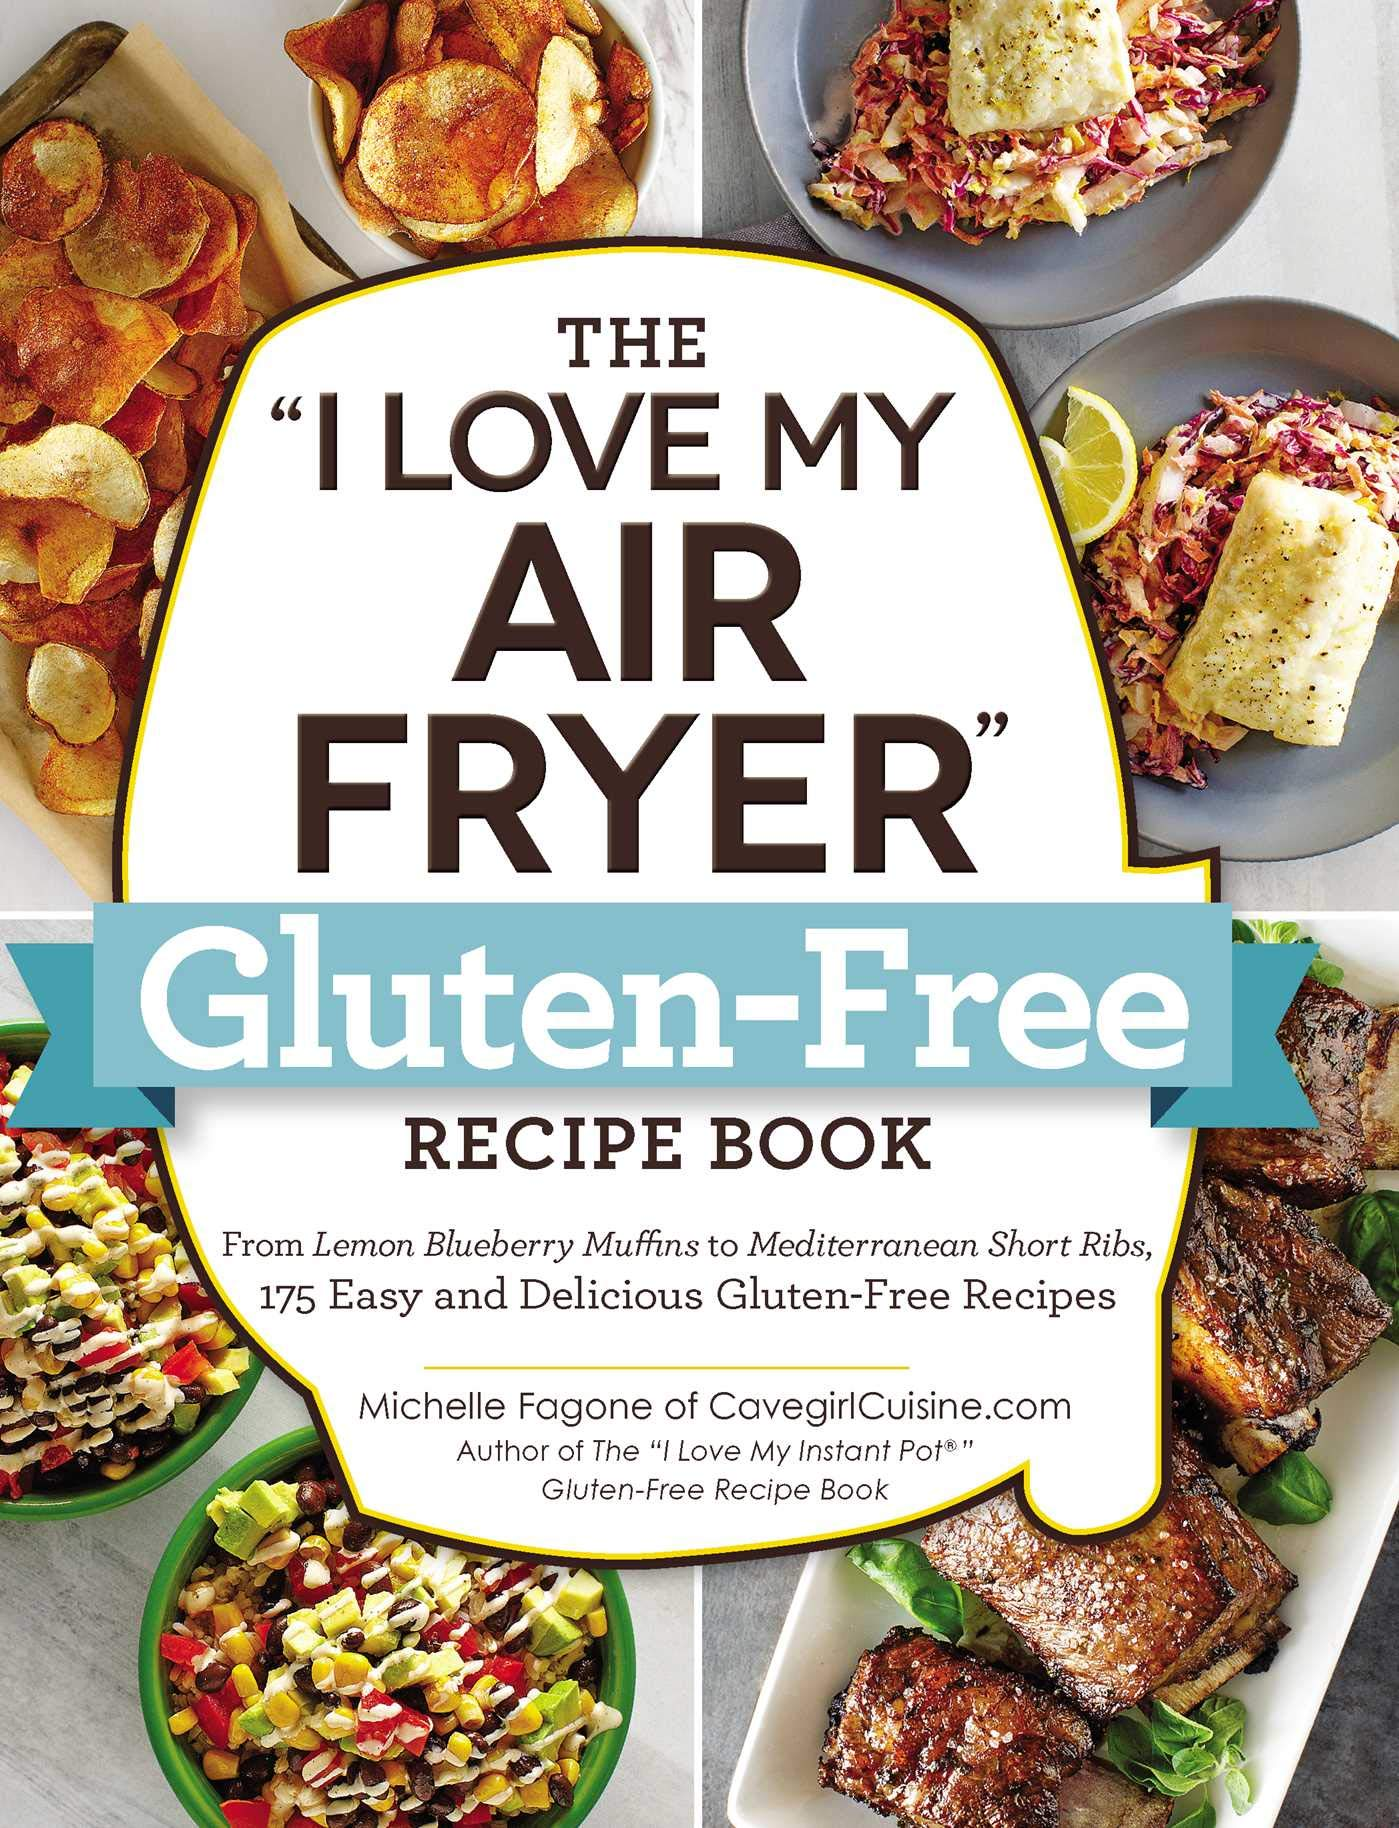 Gluten-Free Grilling Recipes and Gluten-Free Recipes For Kids: 2 Book Combo (Going Gluten-Free)